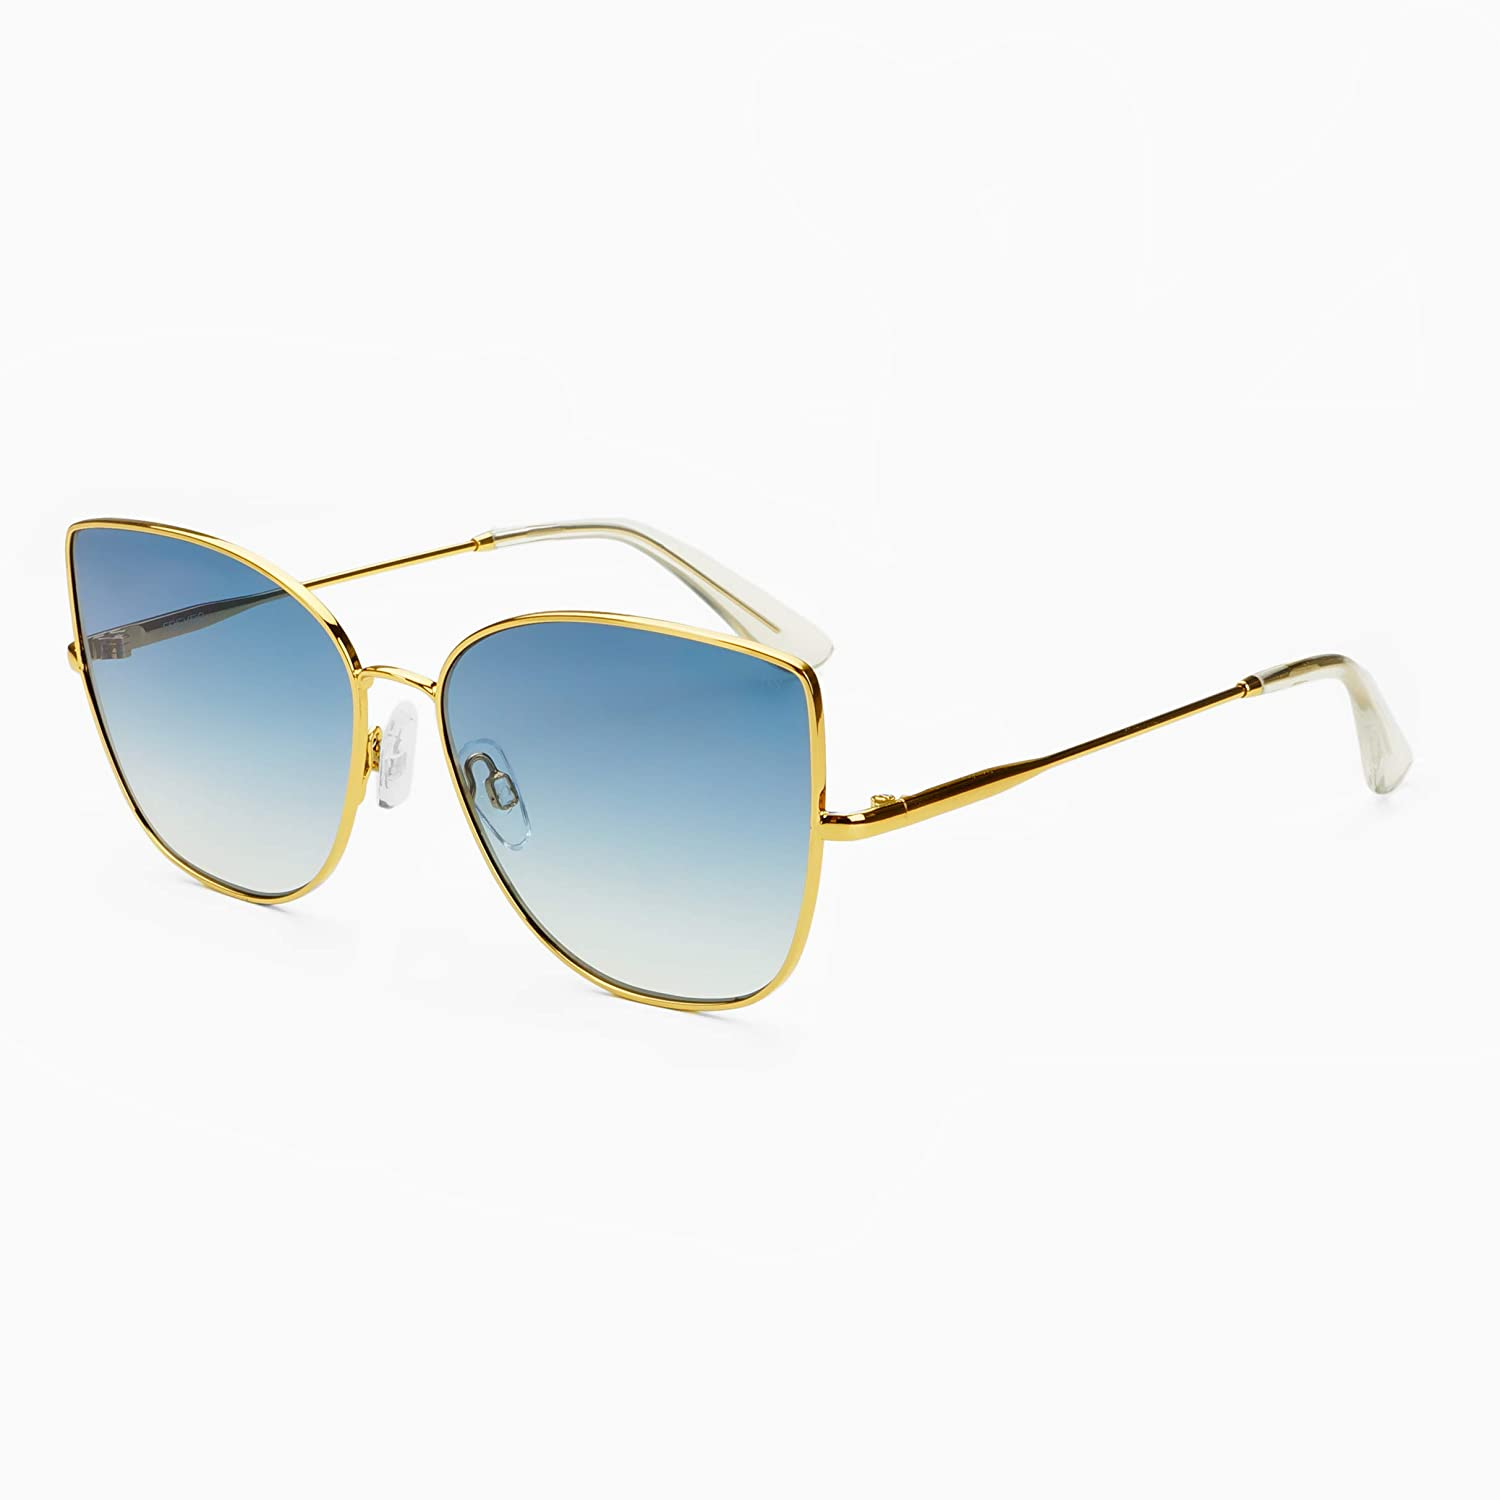 Amazon.com: FREYRS Emma Gato Eye Gafas de sol, M: Clothing